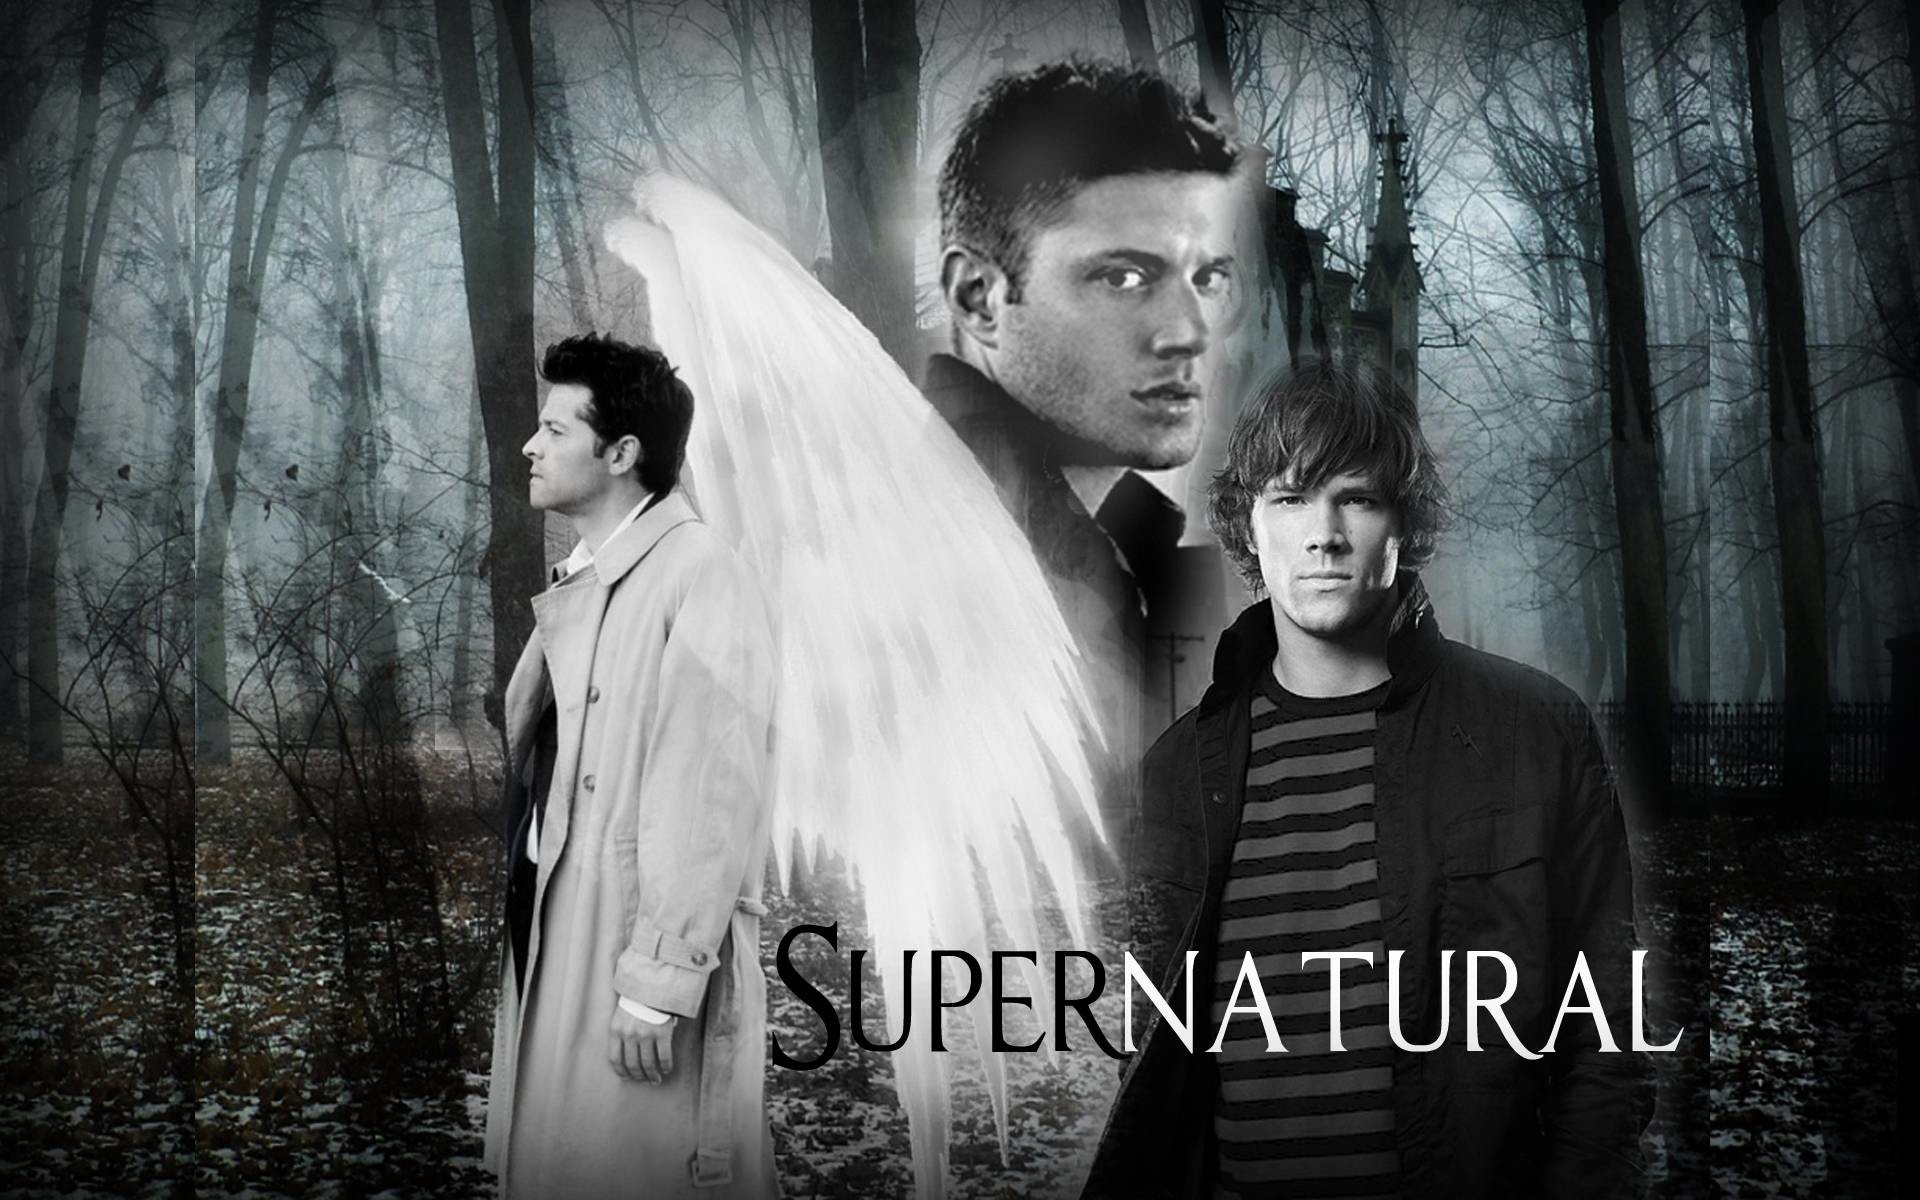 1920x1200 Supernatural skillet supernatural wallpaper HD.